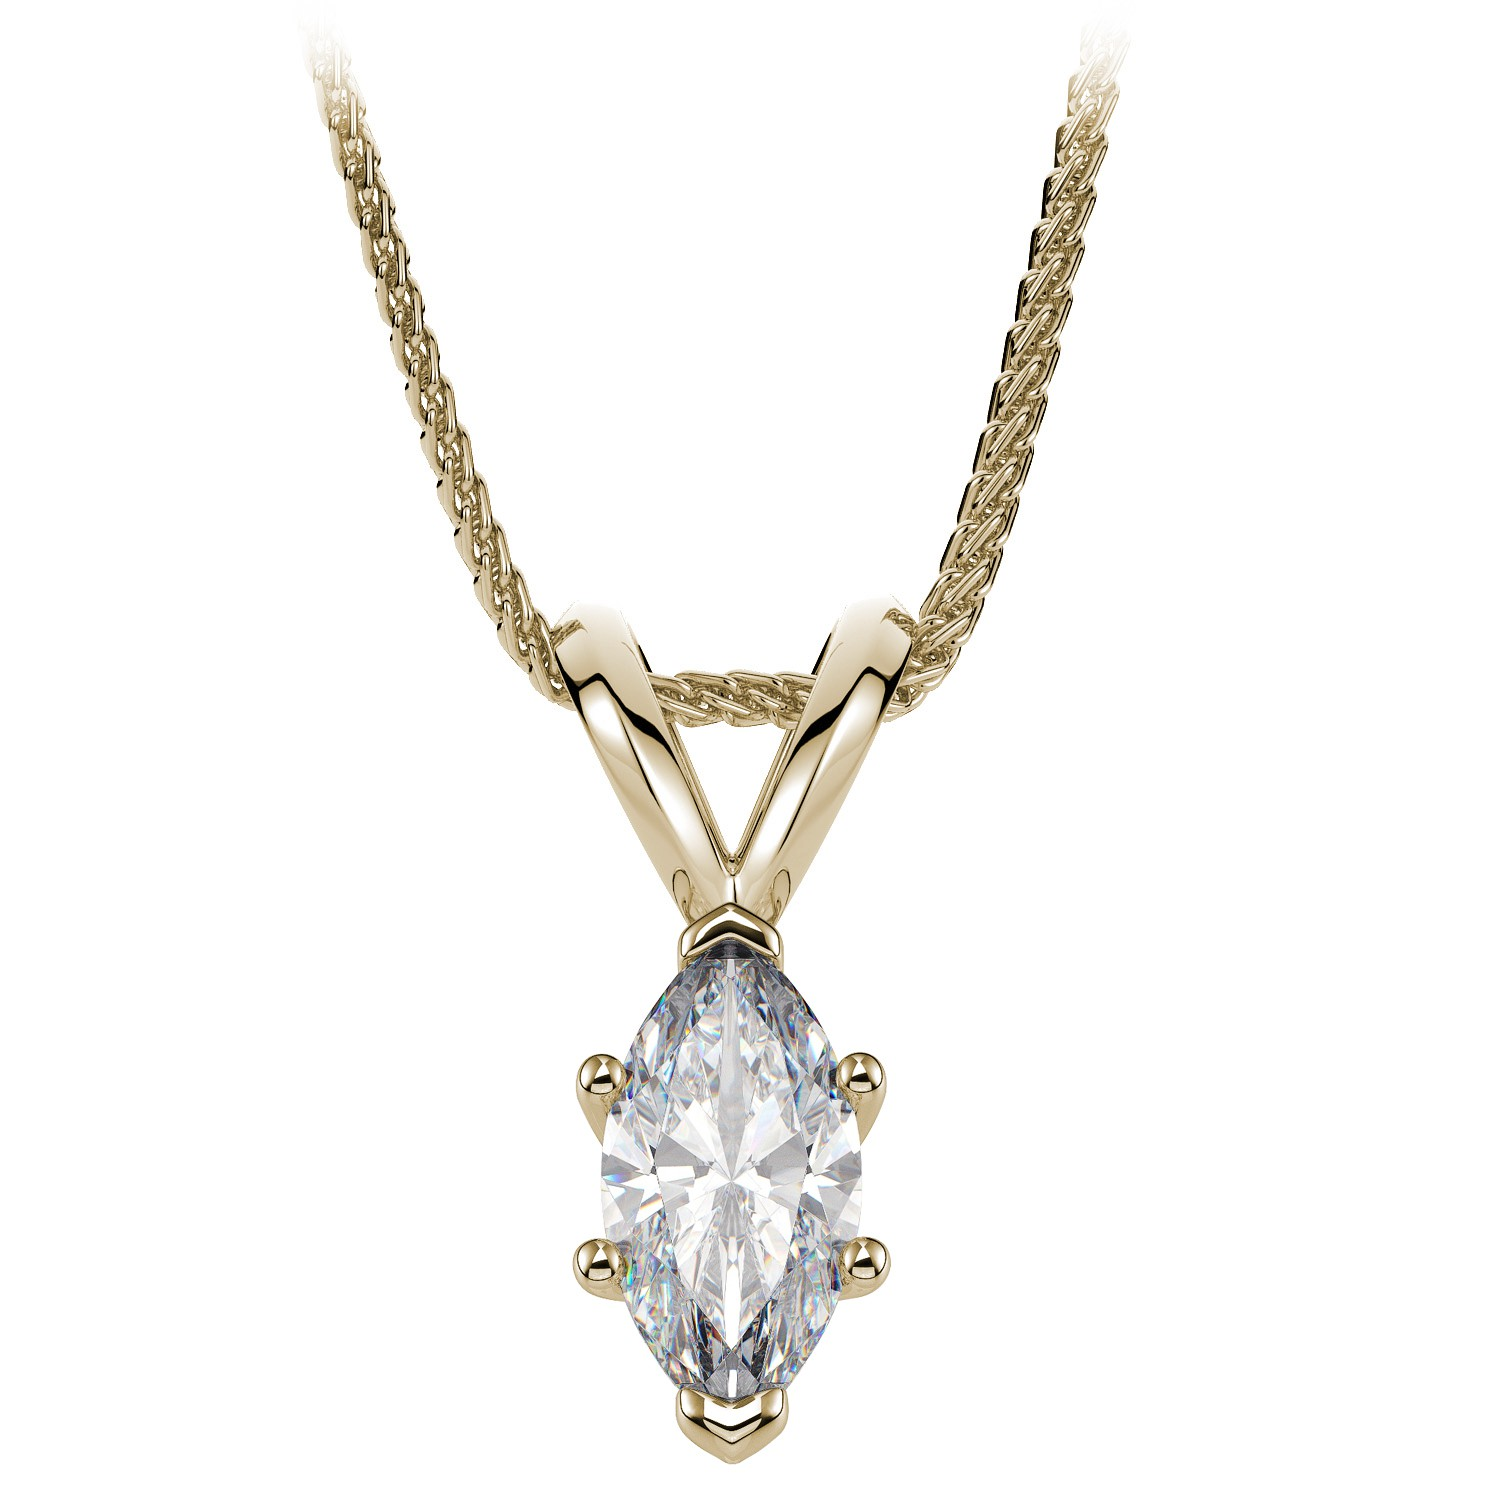 marquise diamond necklaces collections geometric pendant yg yellow set necklace products gold at buy